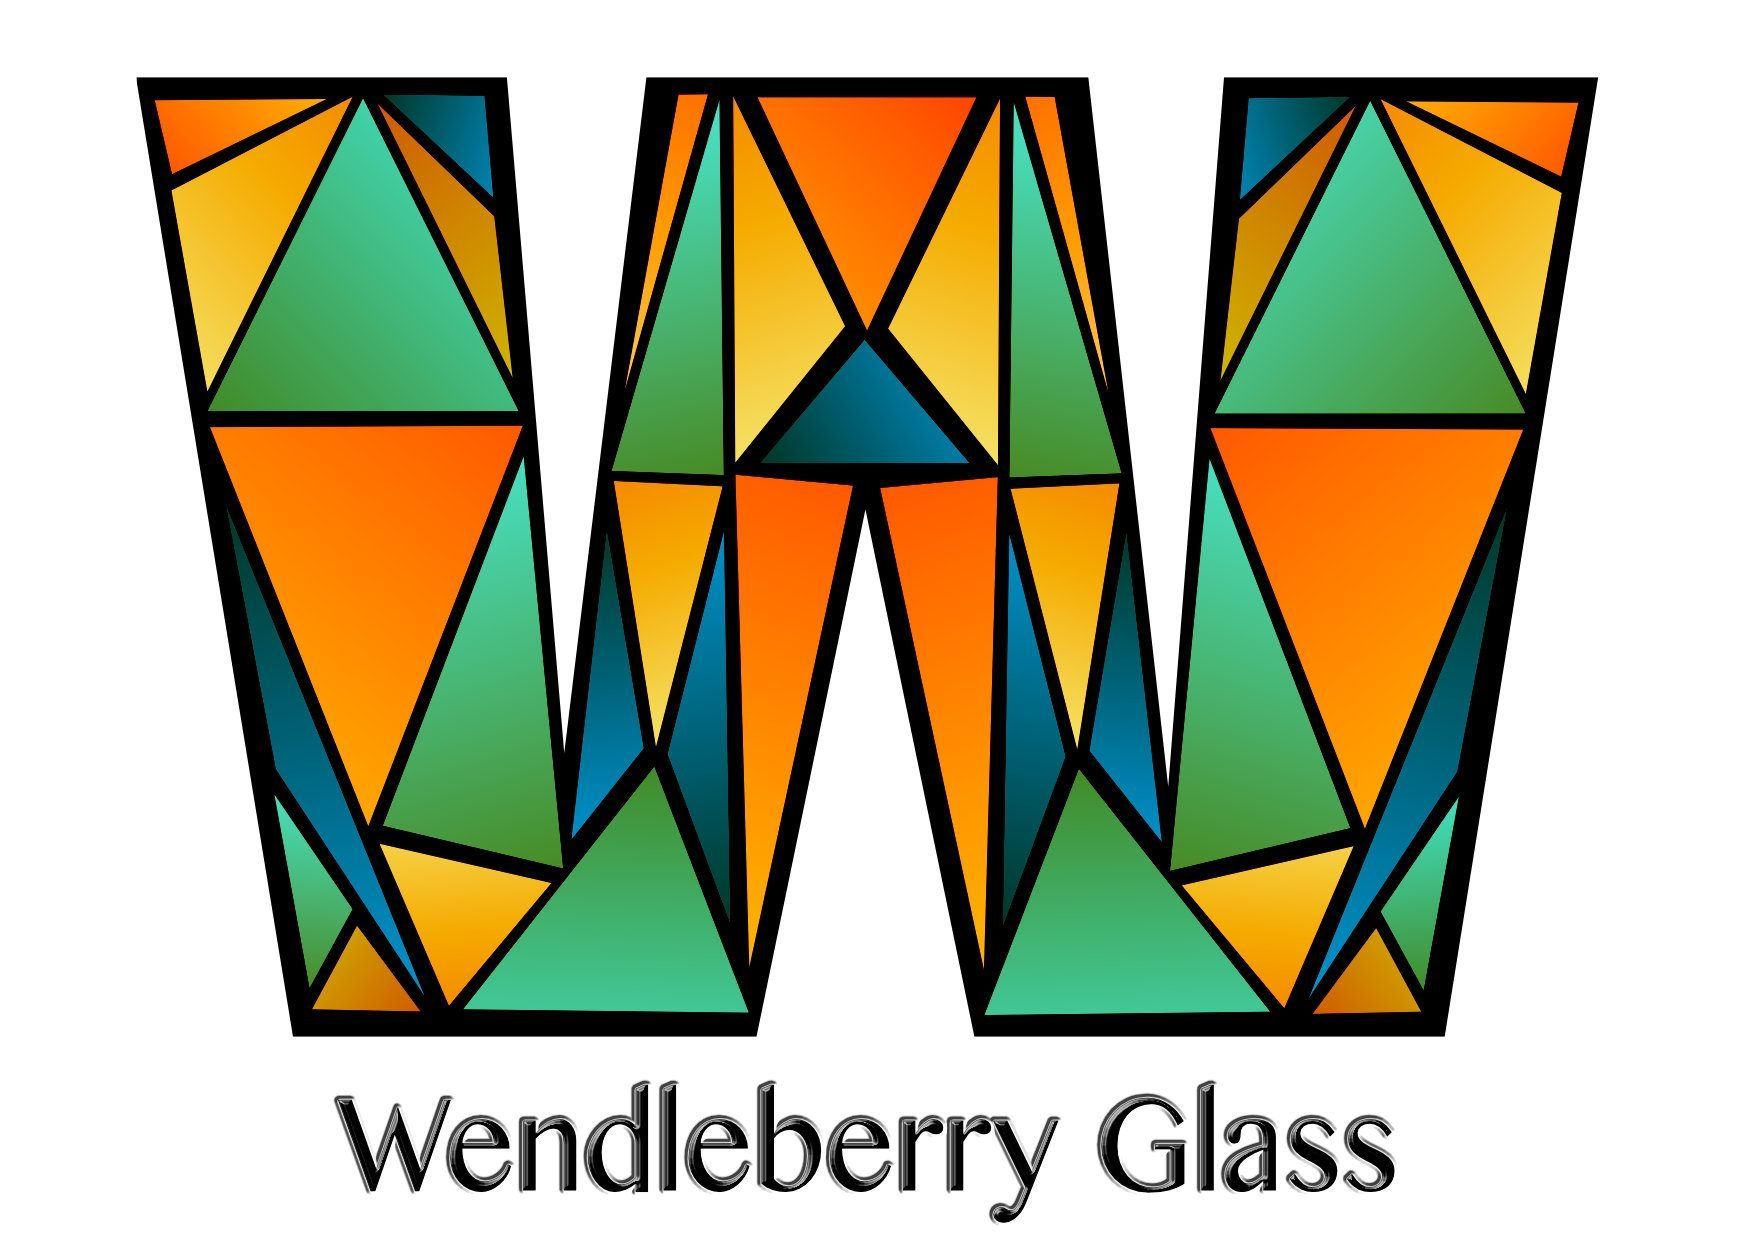 Wendleberry Glass